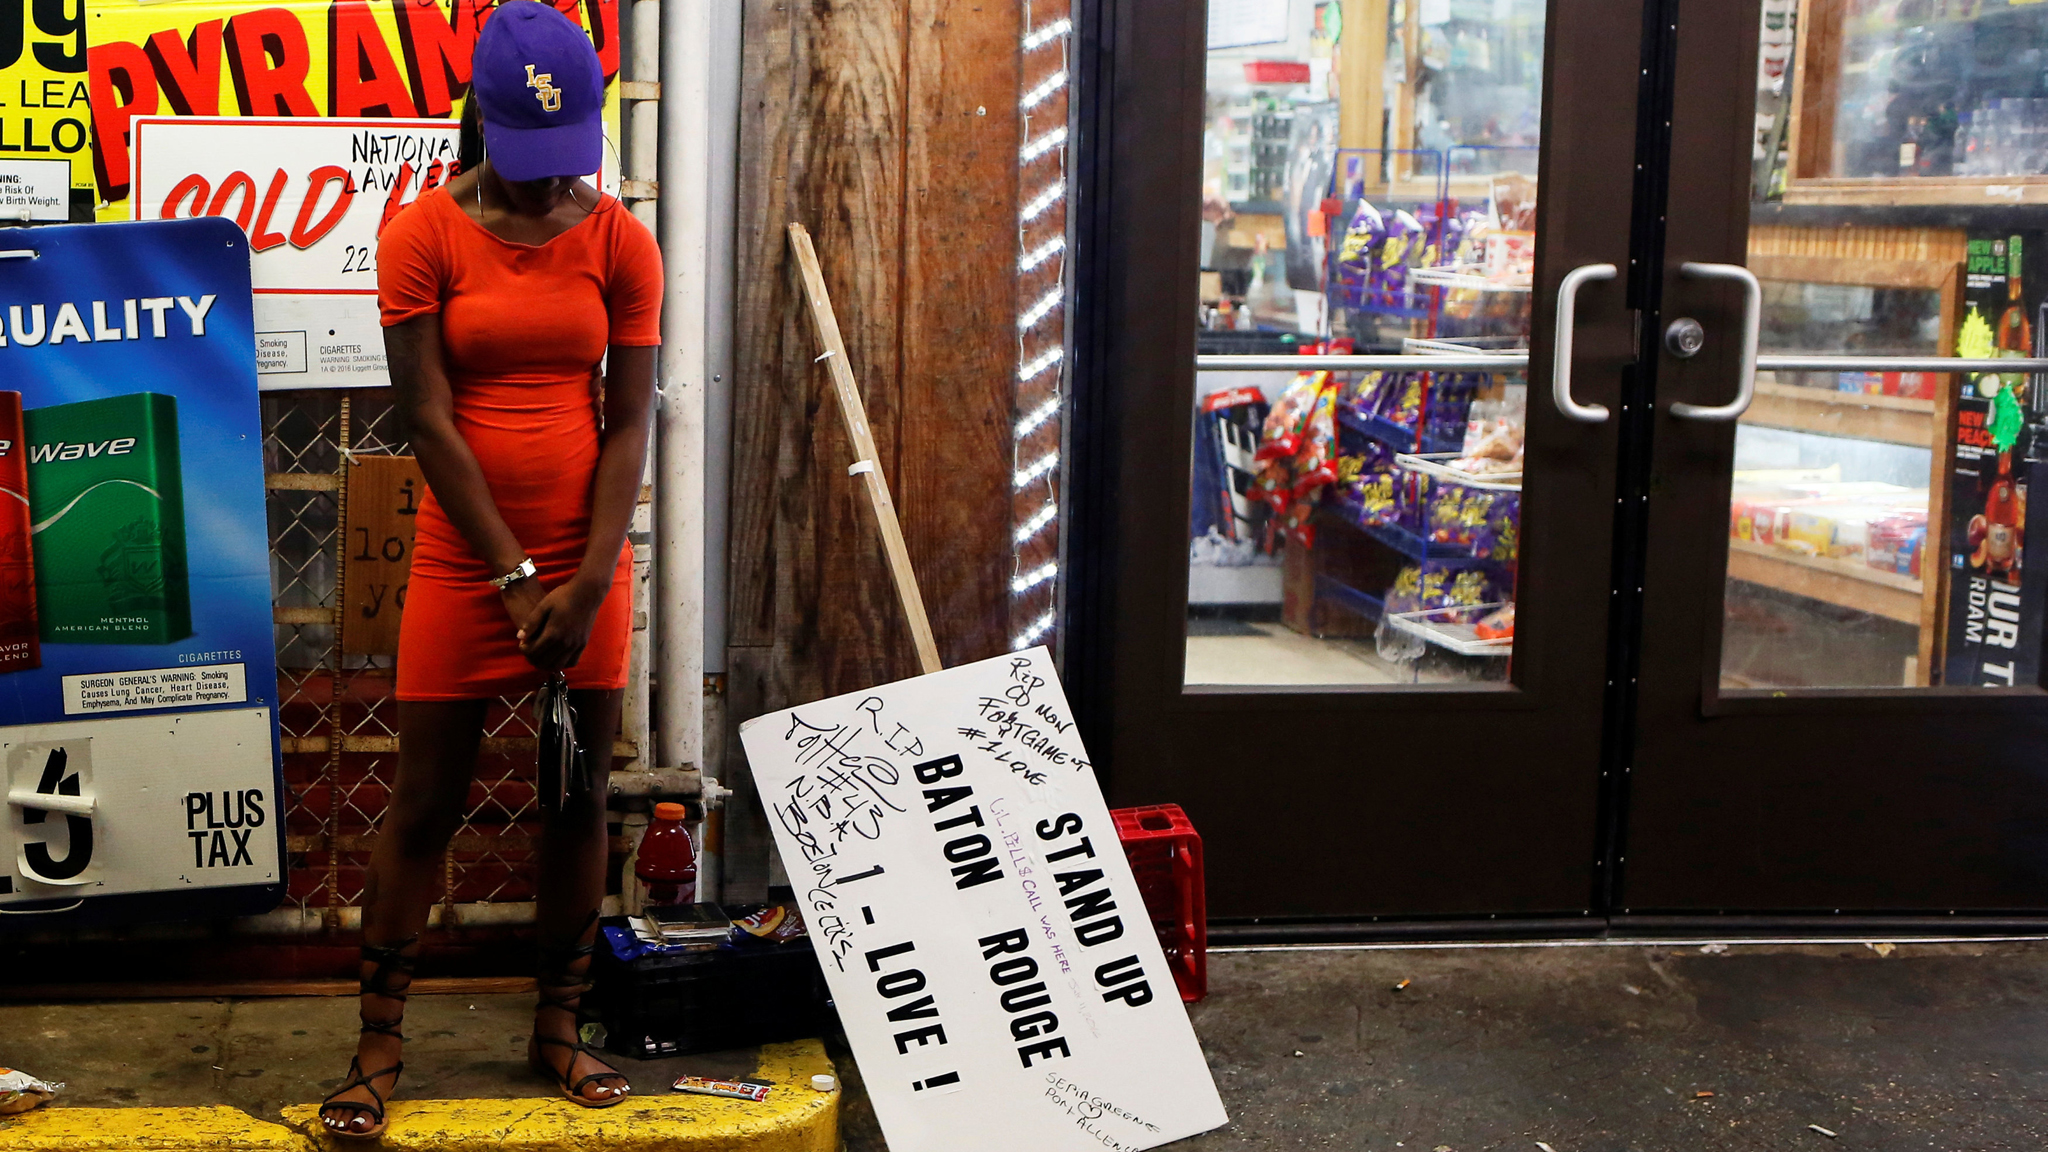 A woman stands by a makeshift memorial at the Triple S convenience store where Alton Sterling was shot dead by police in Baton Rouge, Louisiana, U.S., July 11, 2016. REUTERS/Shannon Stapleton